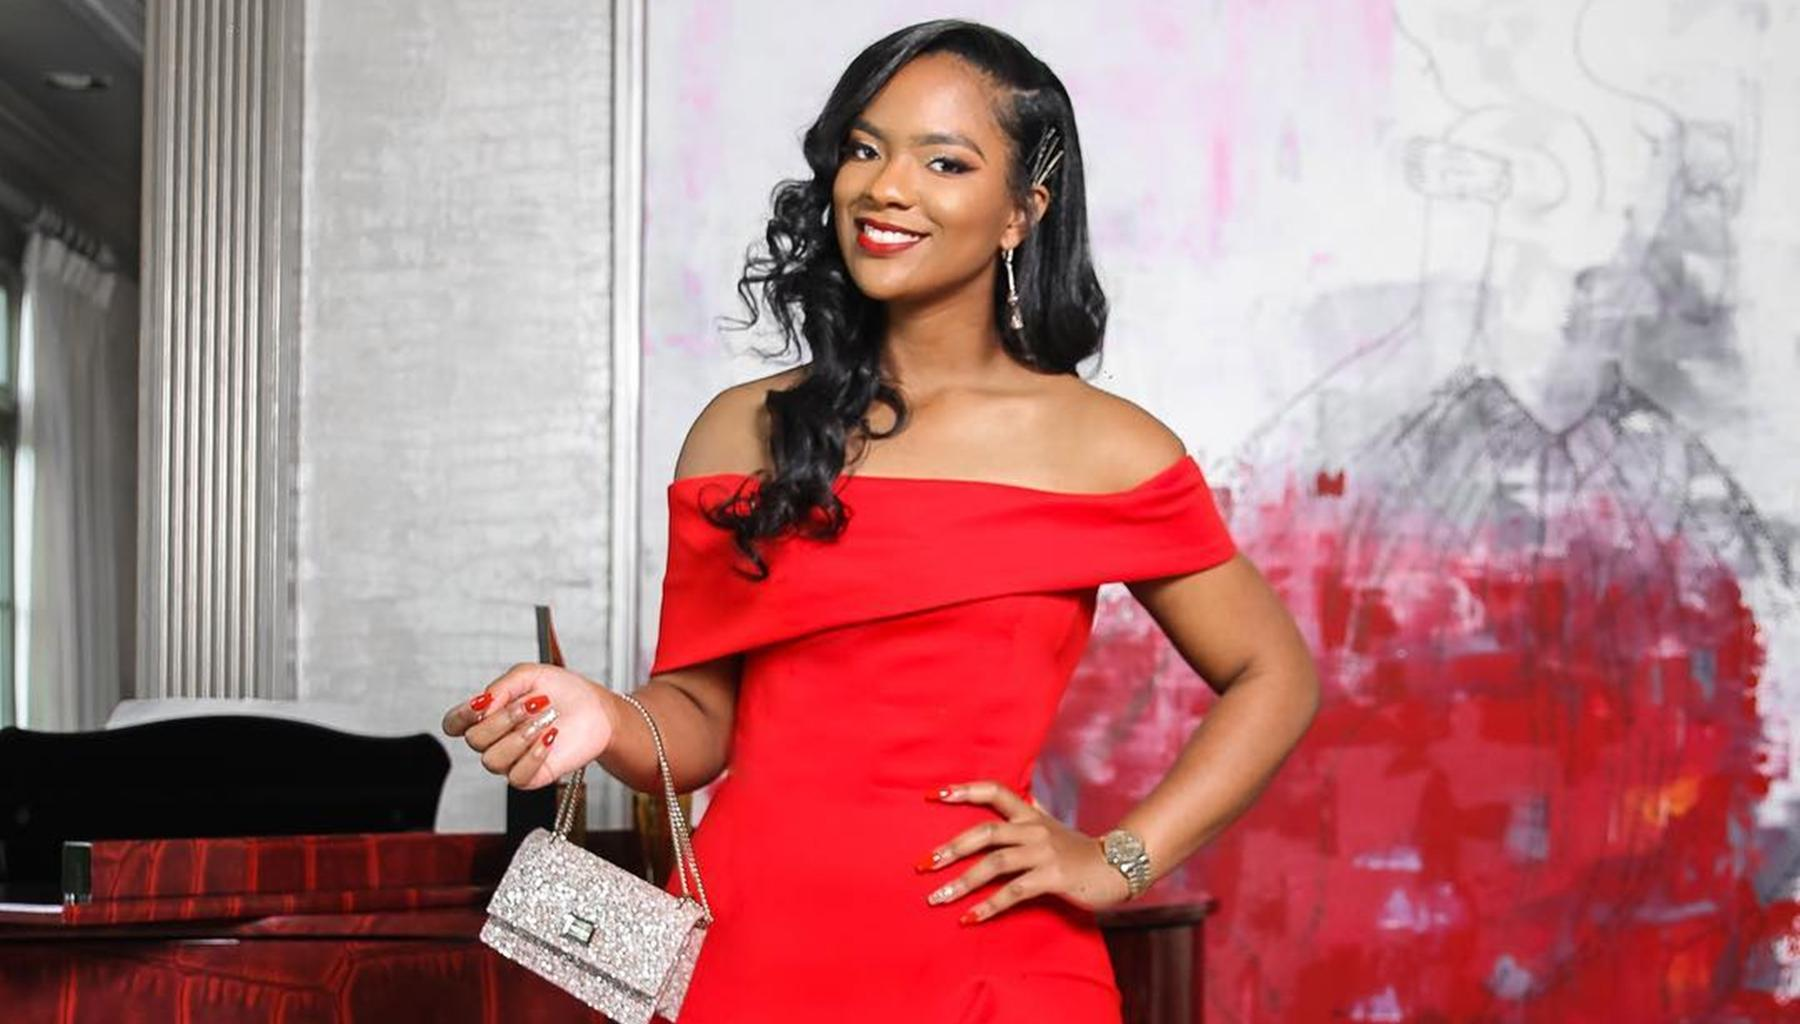 Kandi Burruss Gushes Over Her Daughter, Riley Burruss And Tamika Scott Is Feeling Motivated